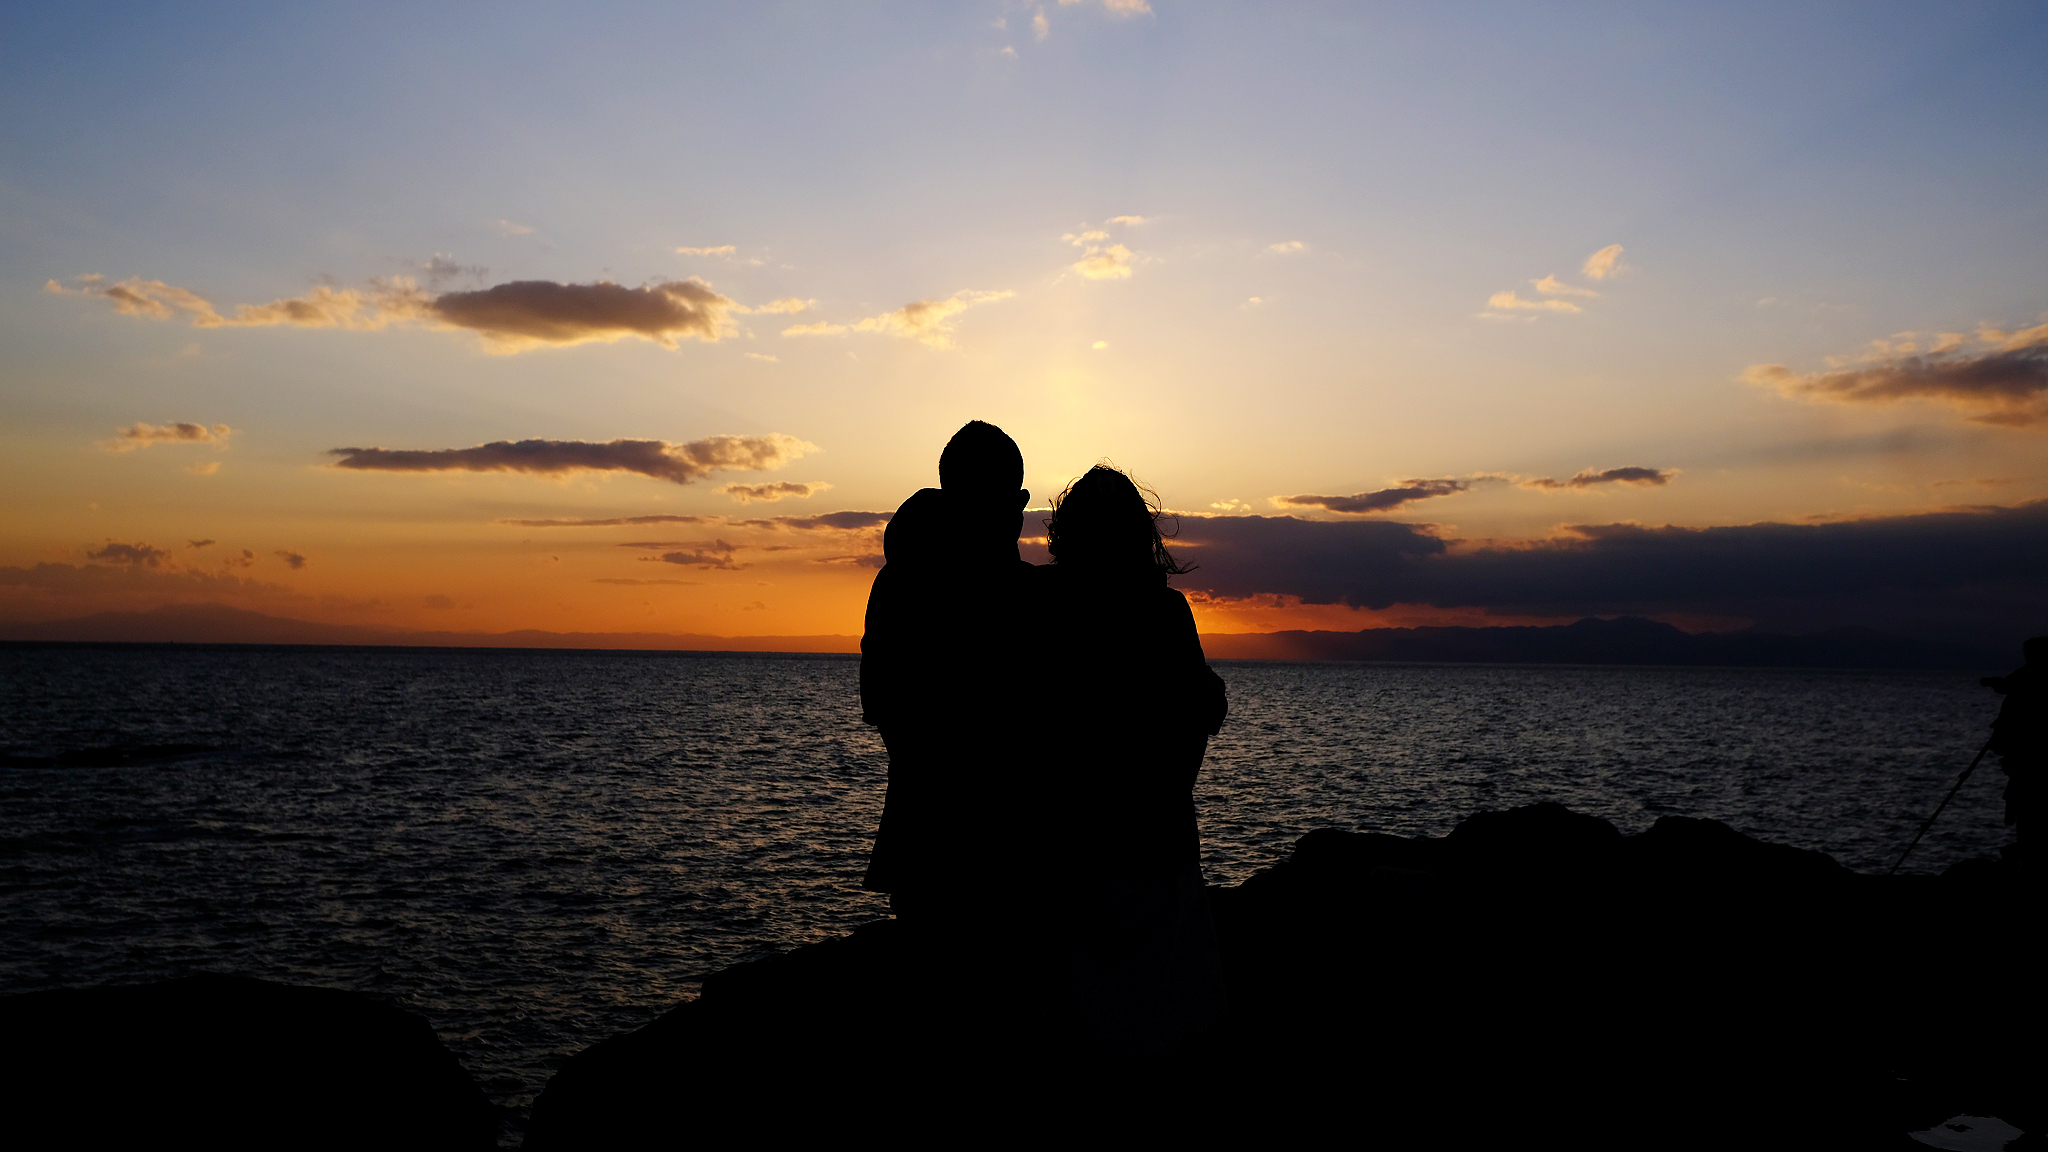 Silhouette of a couple standing on ocean rocks in the sunset.